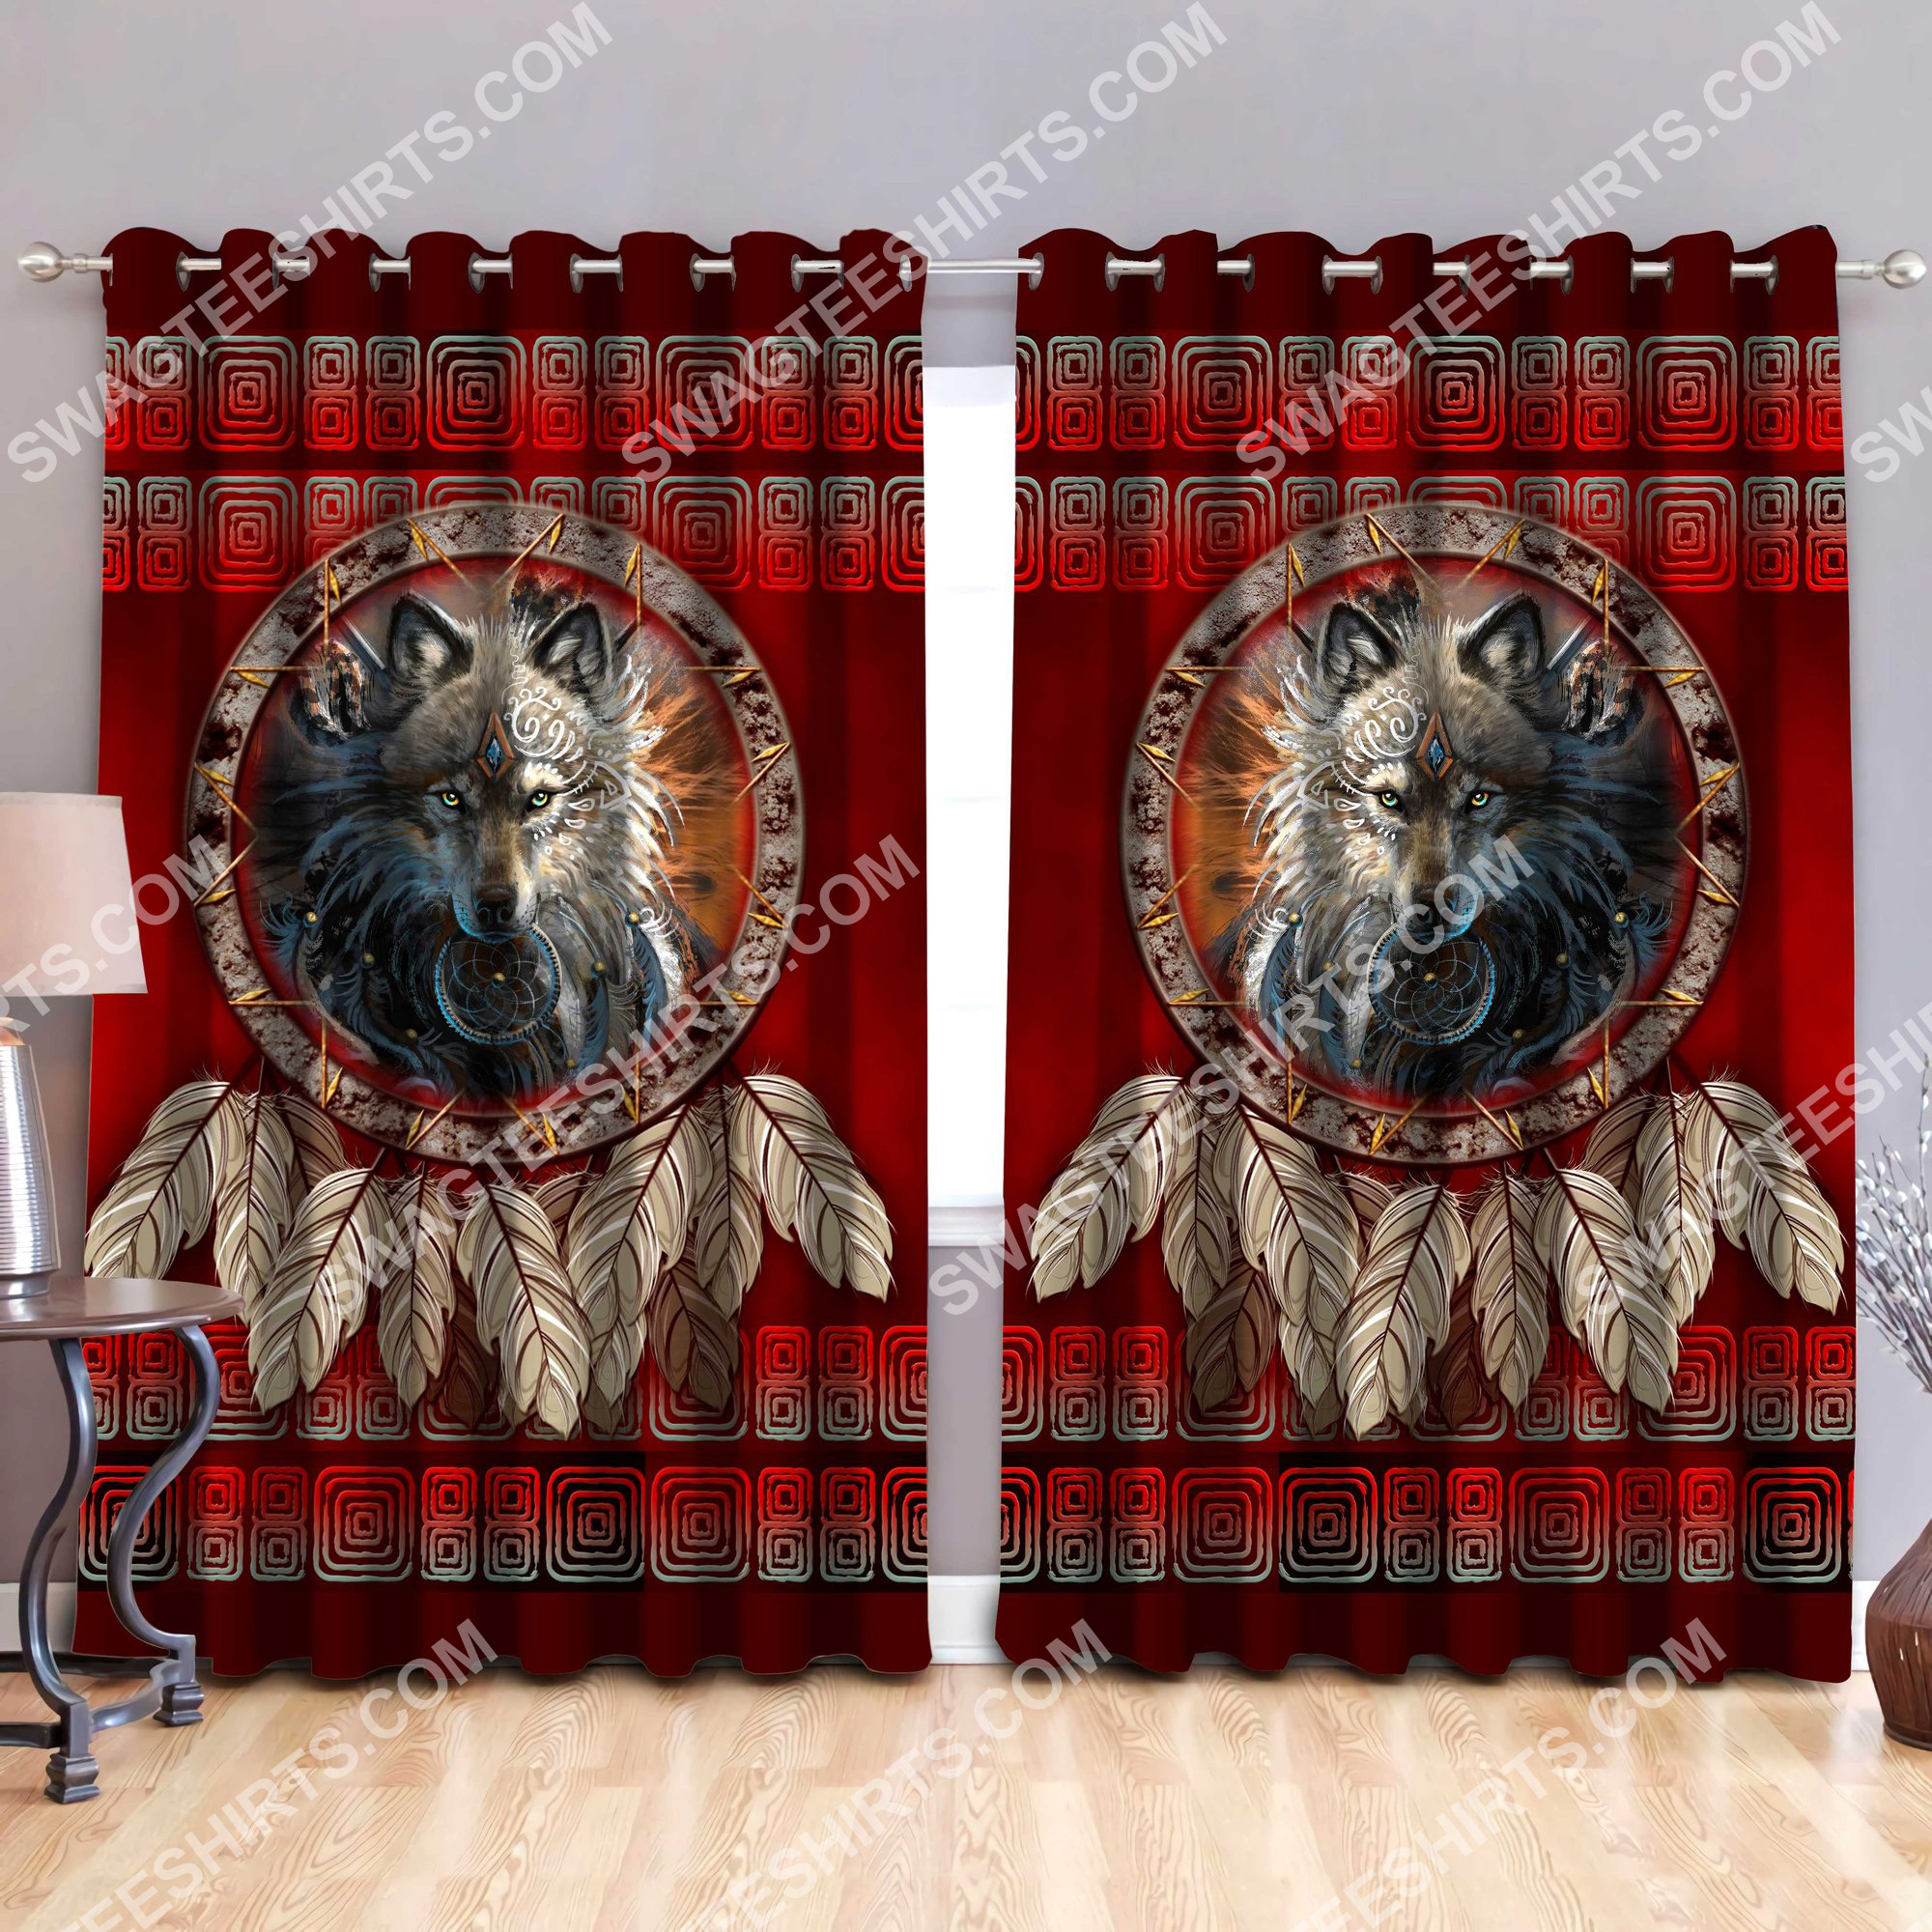 wolf american native symbol all over printed window curtains 2(2) - Copy